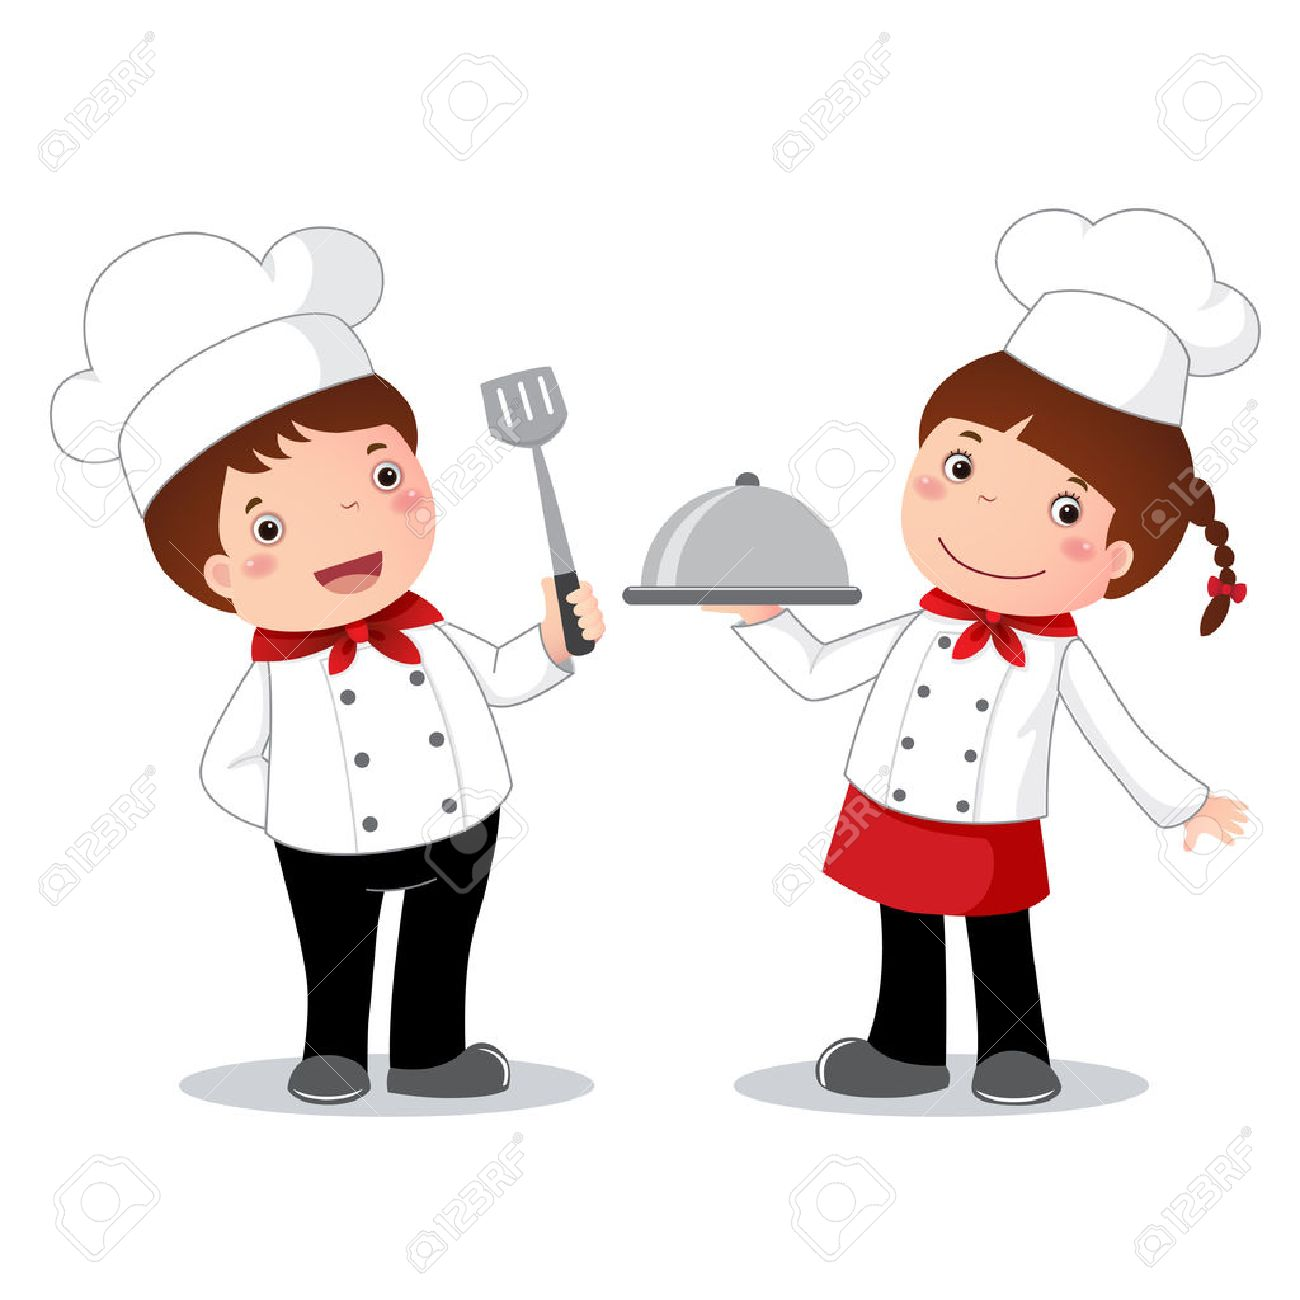 Illustration Of Profession Costume Of Chef For Kids Royalty Free